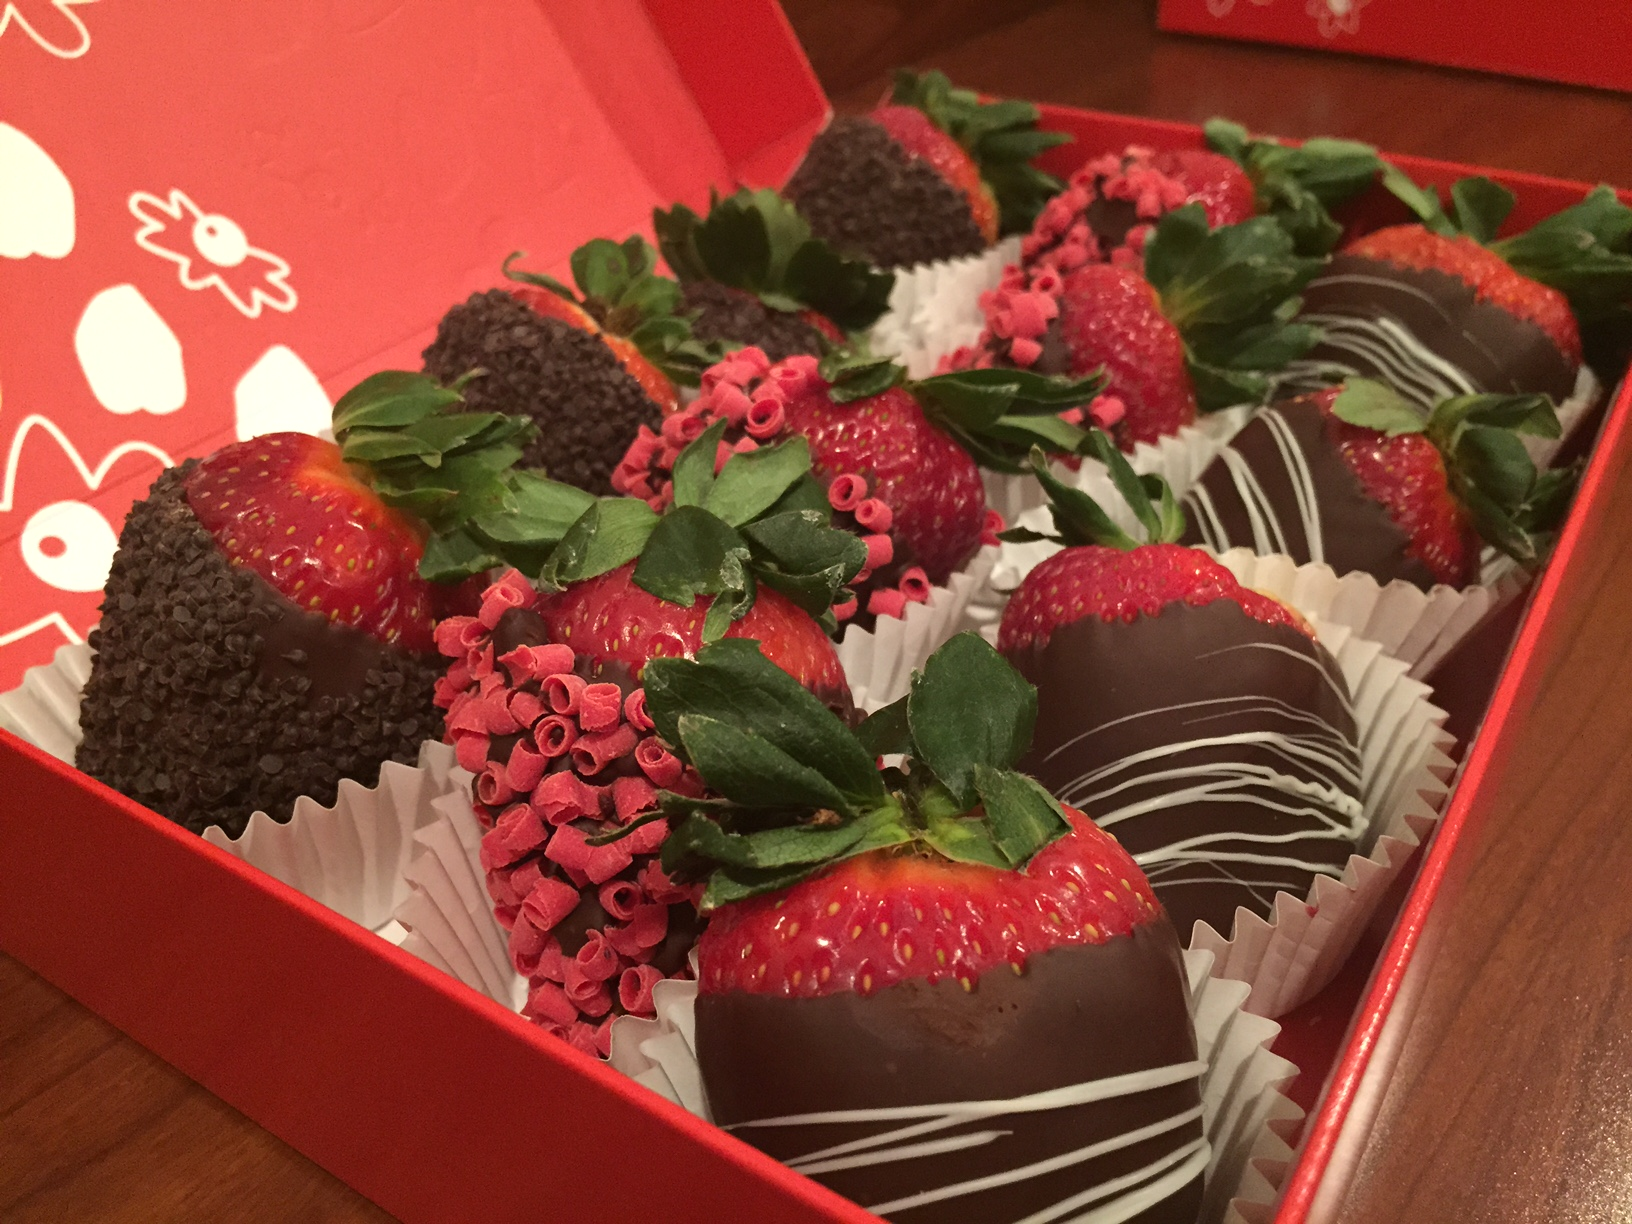 Edible Arrangements For Valentines Day Monday February